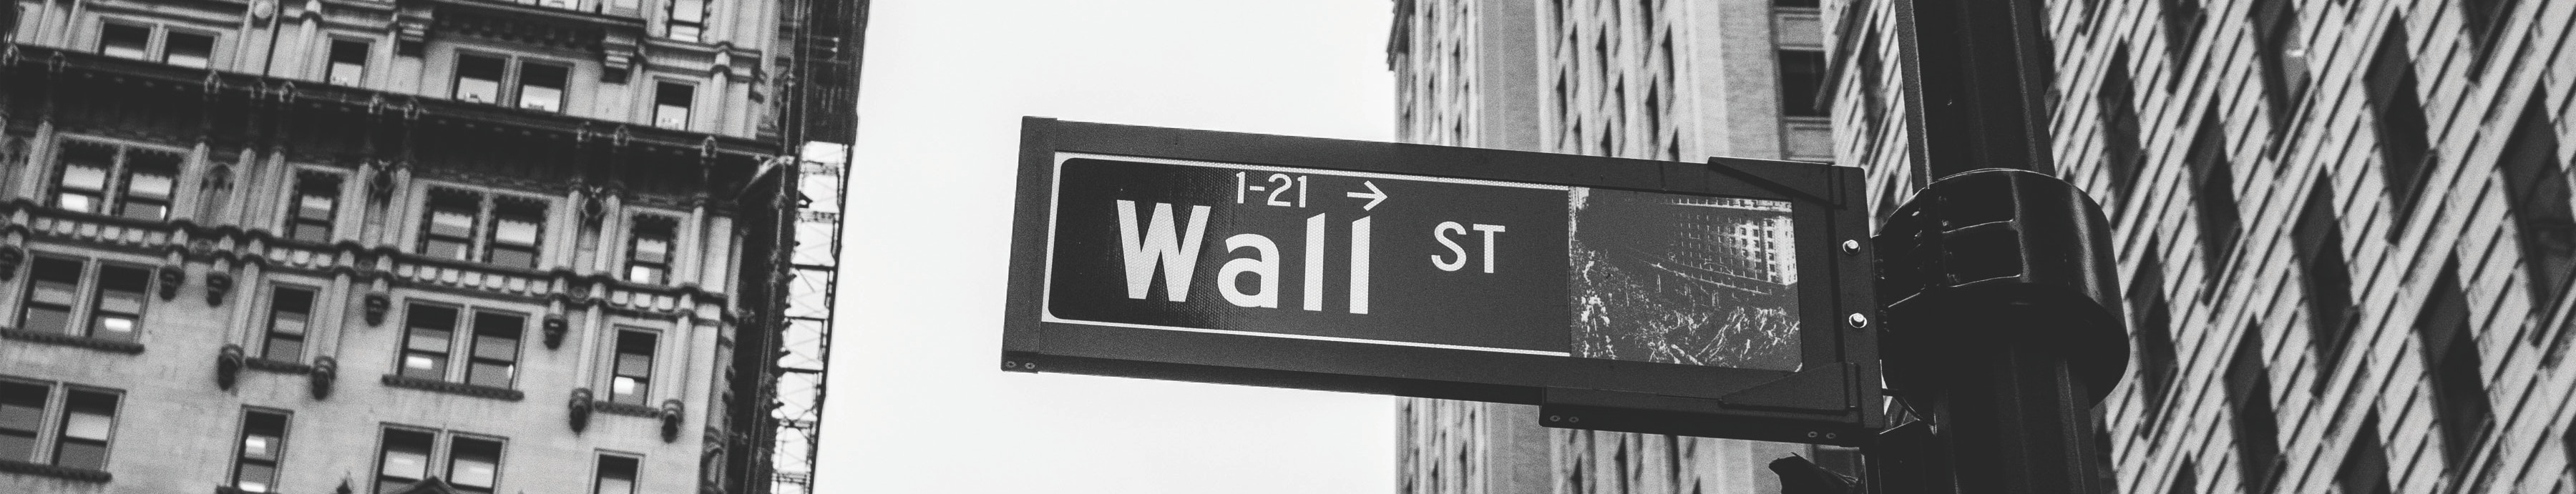 wall street black and white sign